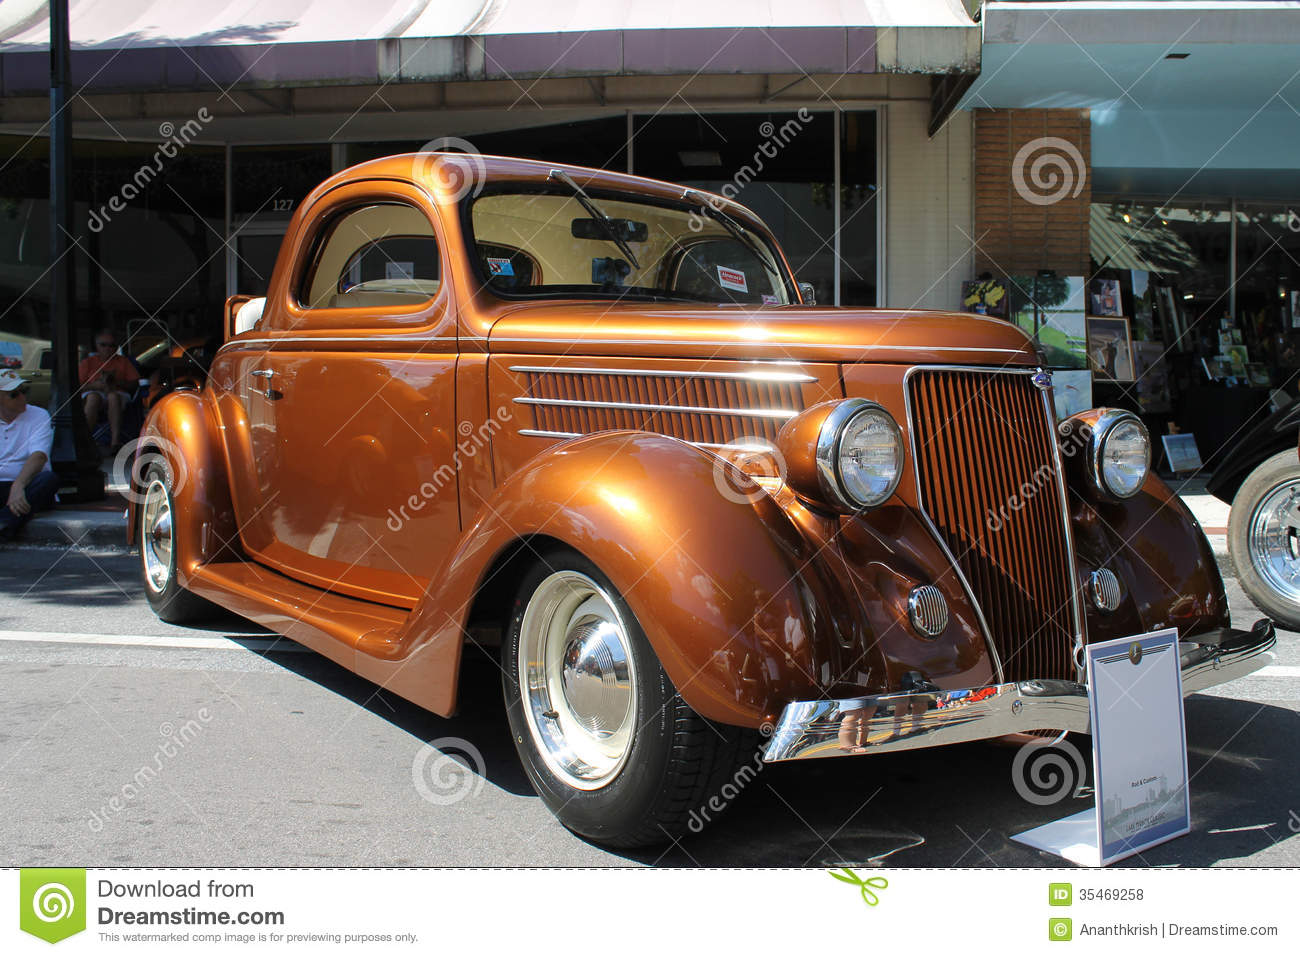 Old Ford Car At The Car Show Editorial Stock Photo Image Of Show - Lakeland florida car show 2018